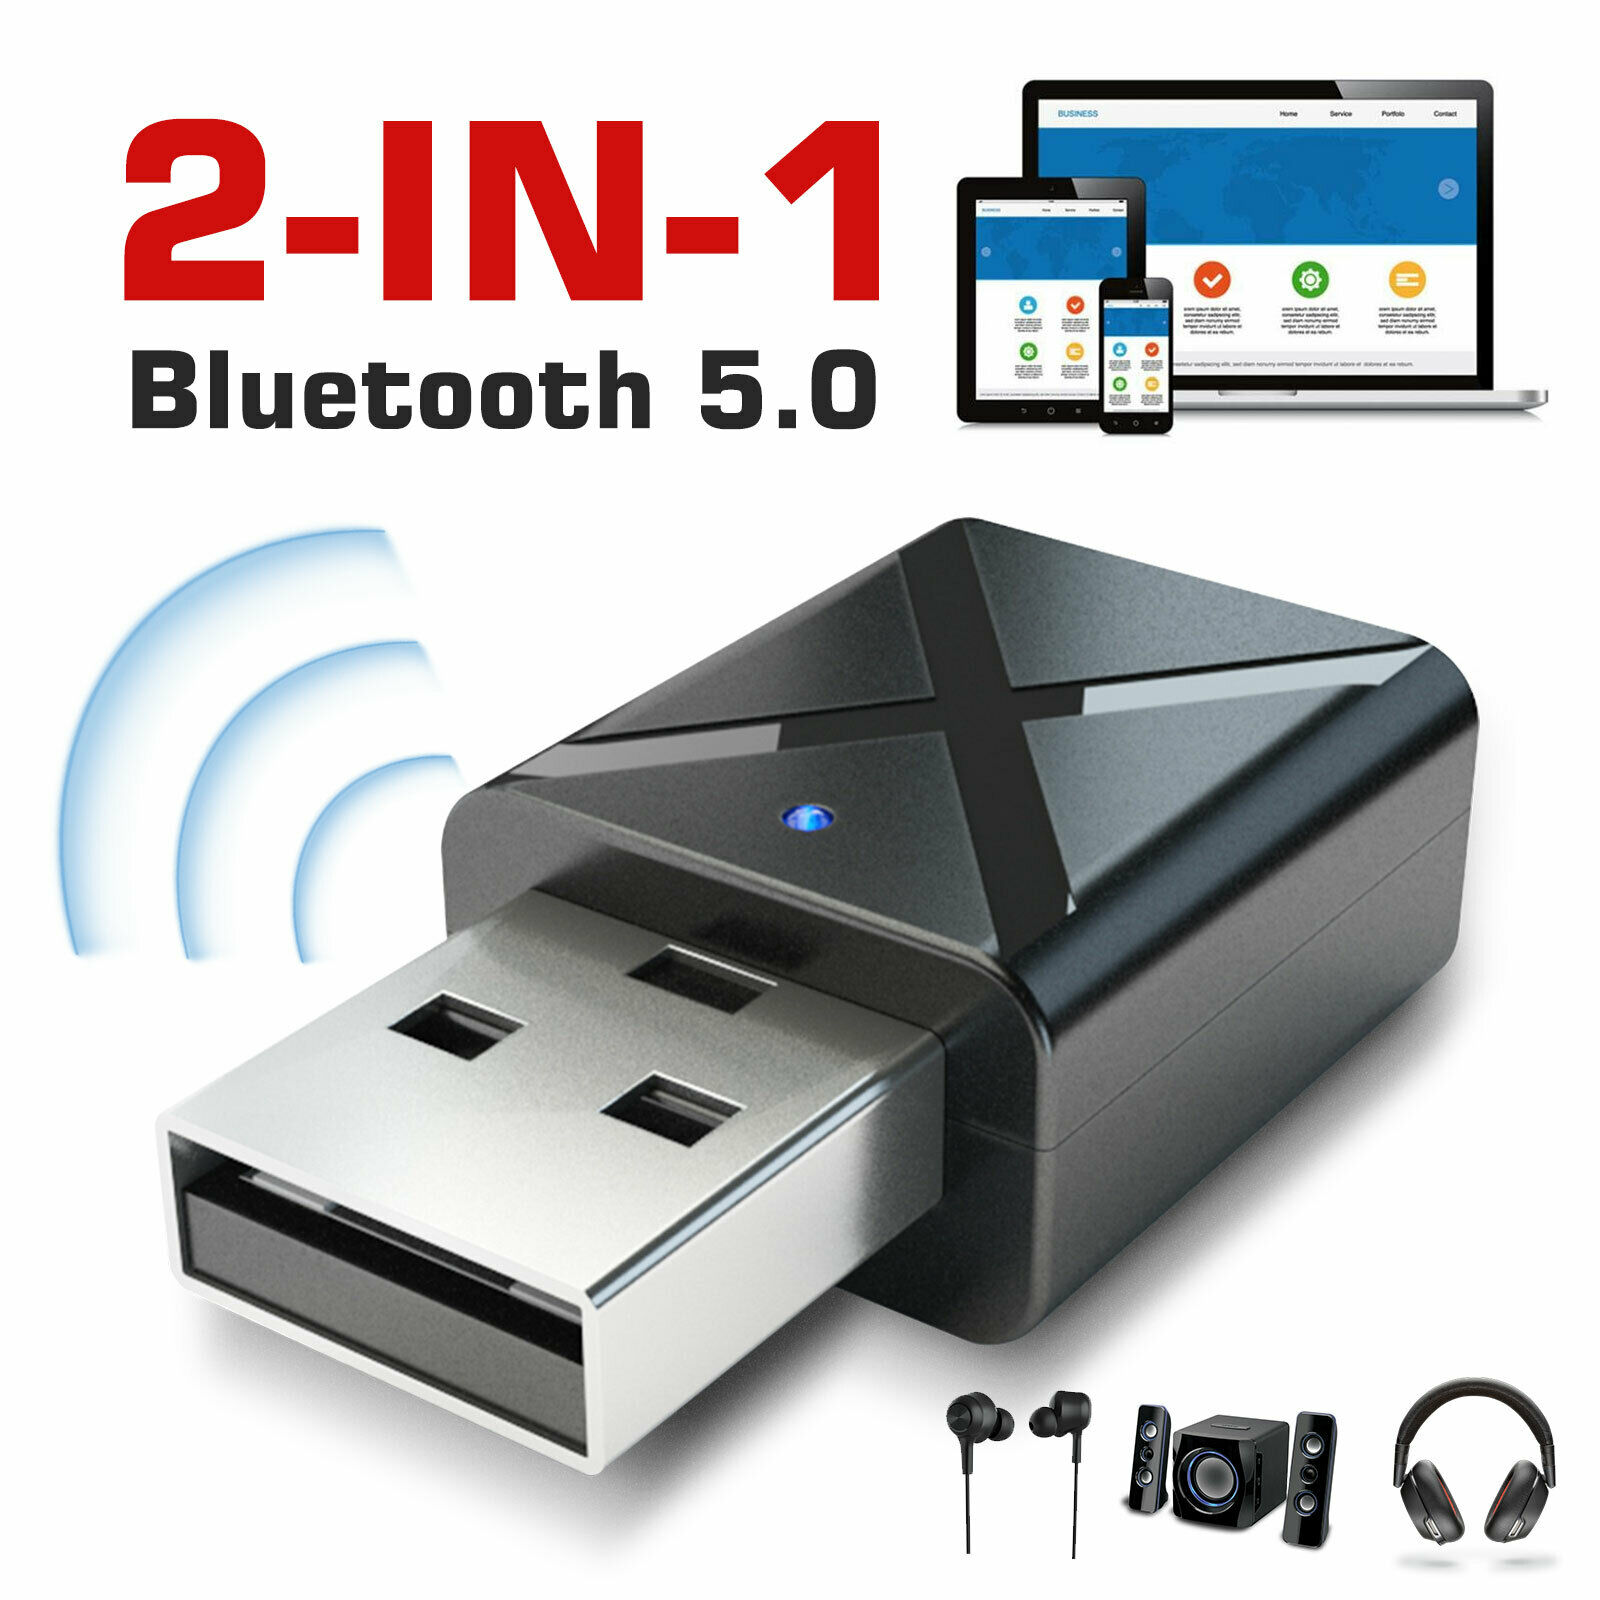 2-in-1 Bluetooth 5.0 Transmitter Receiver Usb Wireless Stereo Audio Adapter Pc Tv Black